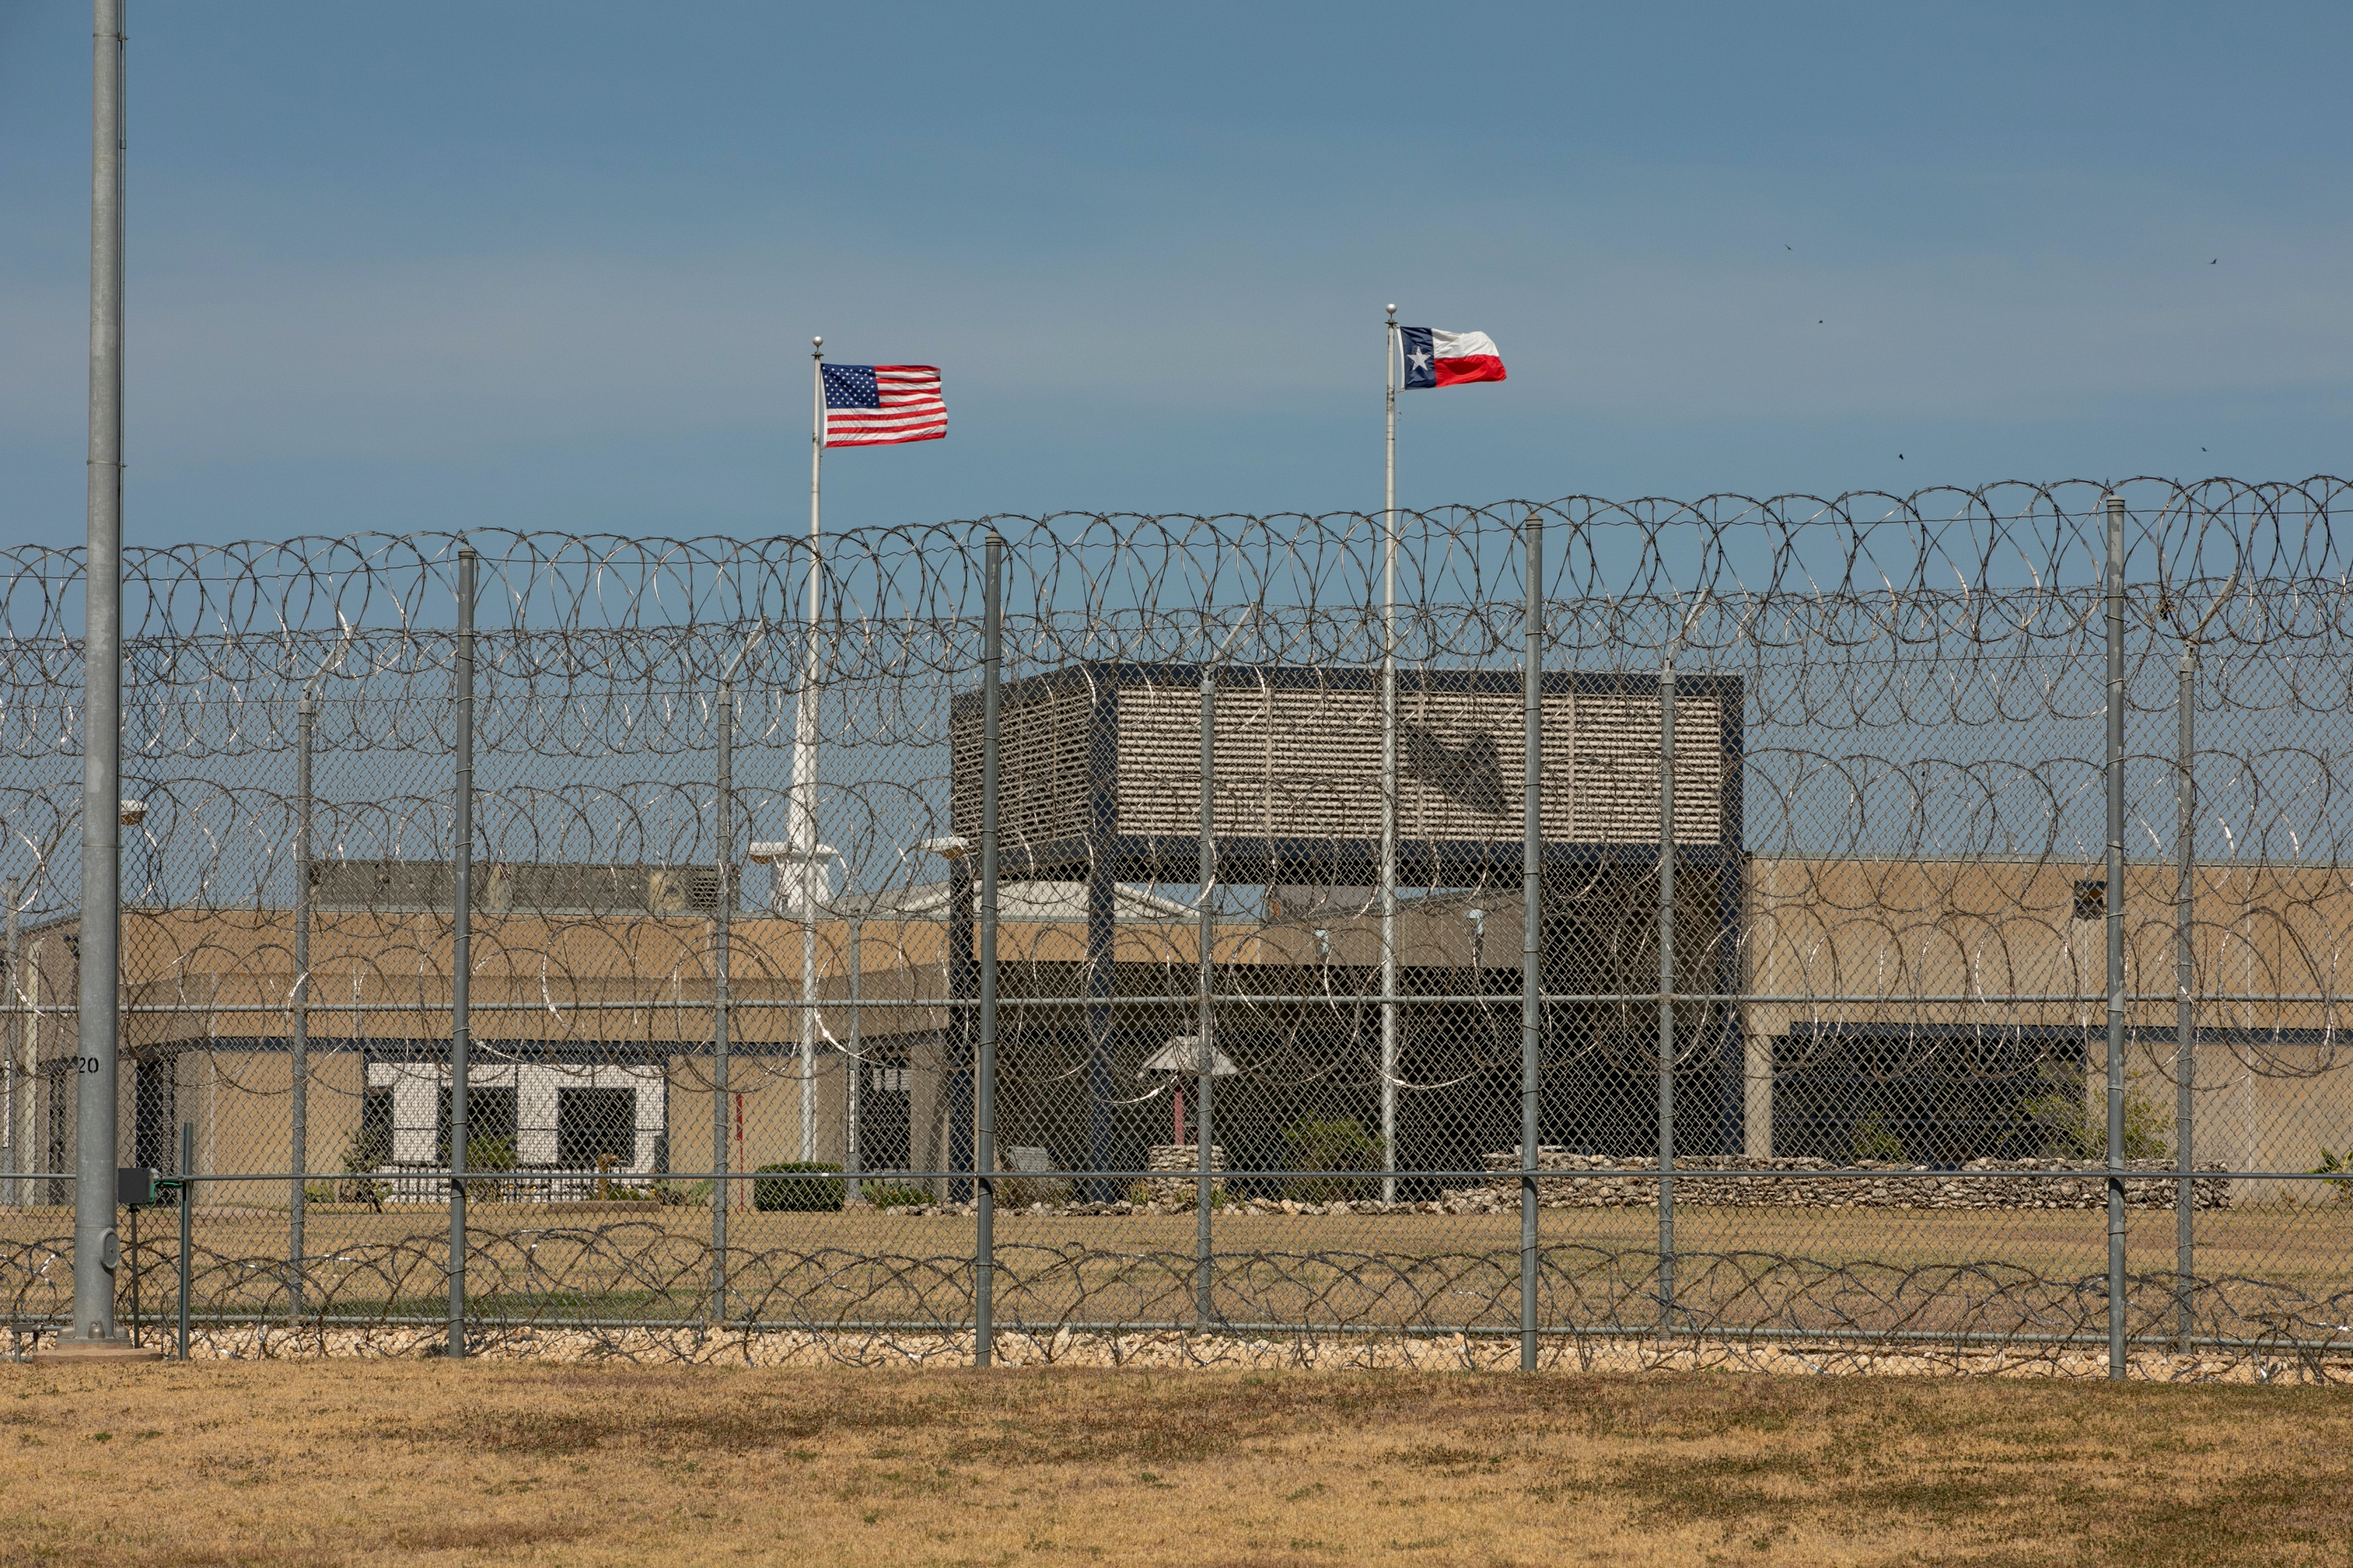 GATESVILLE, TEXAS - August 8, 2018: The Alfred D. Hughes Unit prison for men of the Texas Department of Criminal Justice located in Gatesville, Texas. Photo by Ilana Panich-Linsman for The Intercept